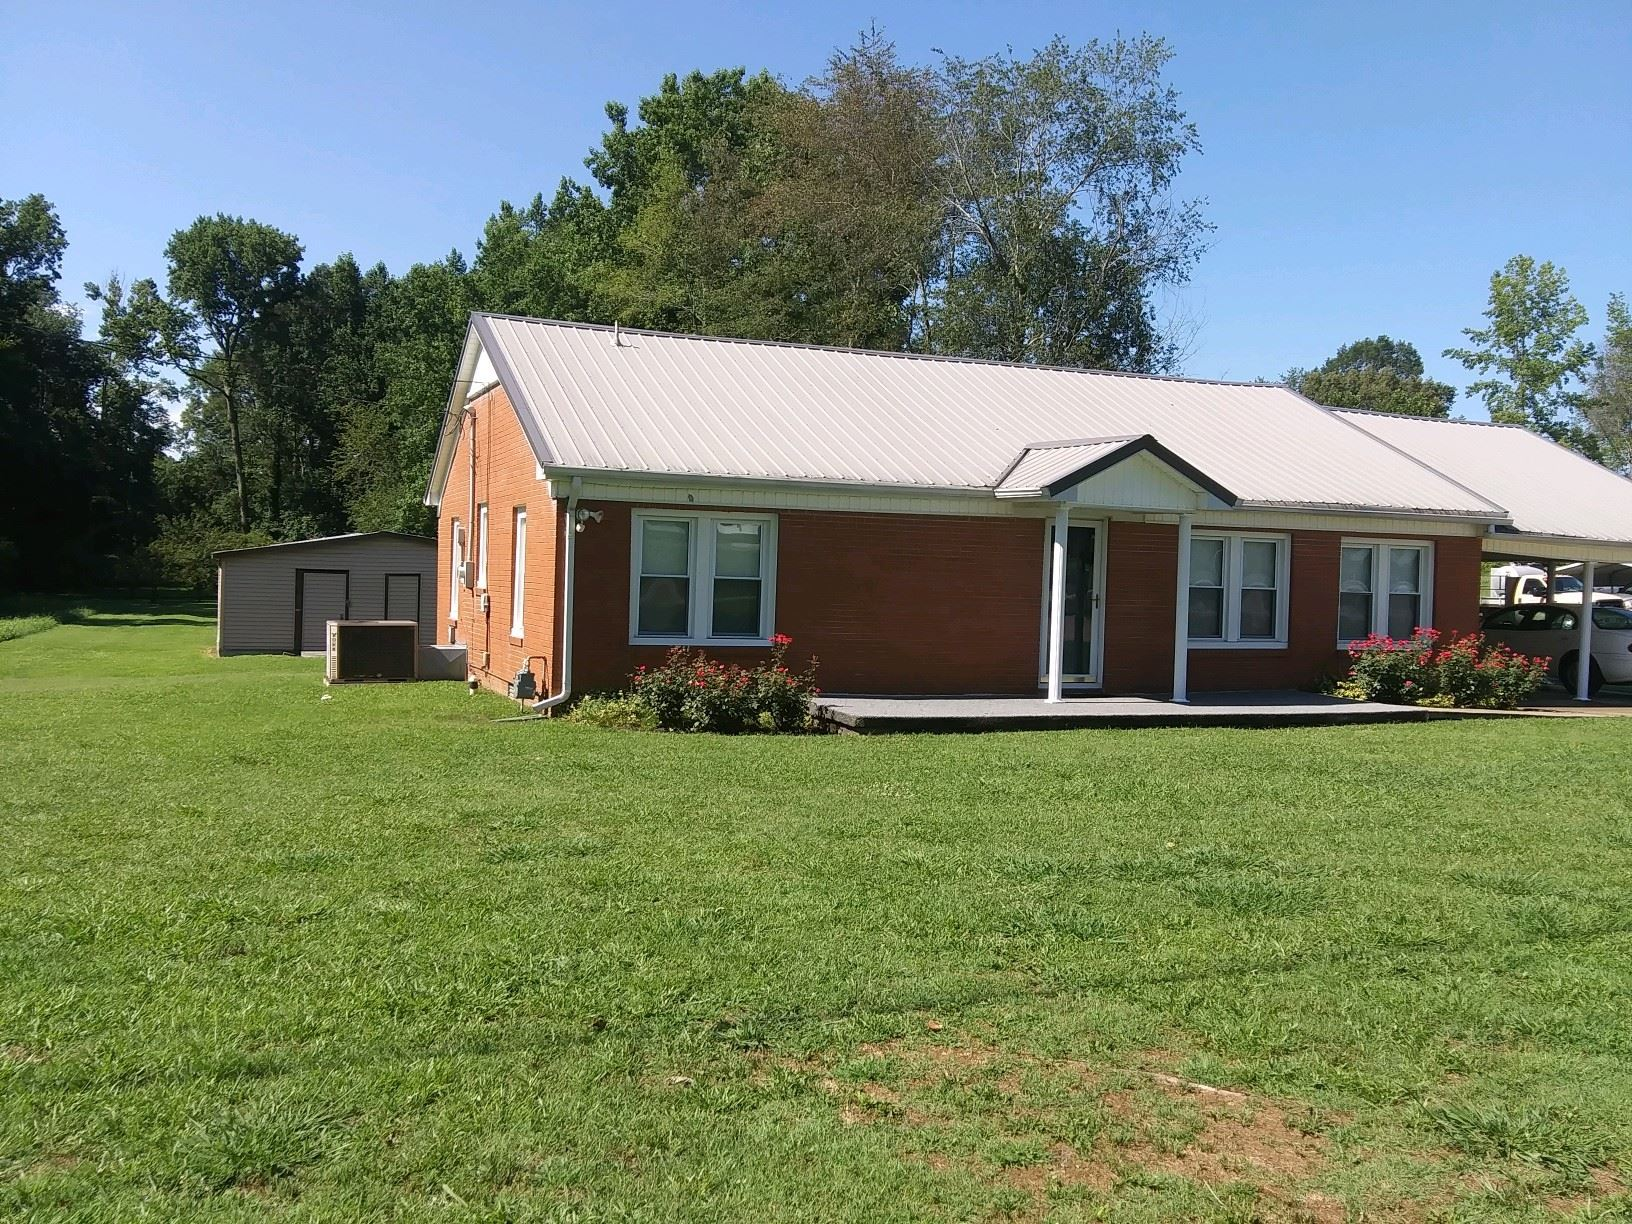 Photo of 753 Weakley Creek Rd, Lawrenceburg, TN 38464 (MLS # 2169361)